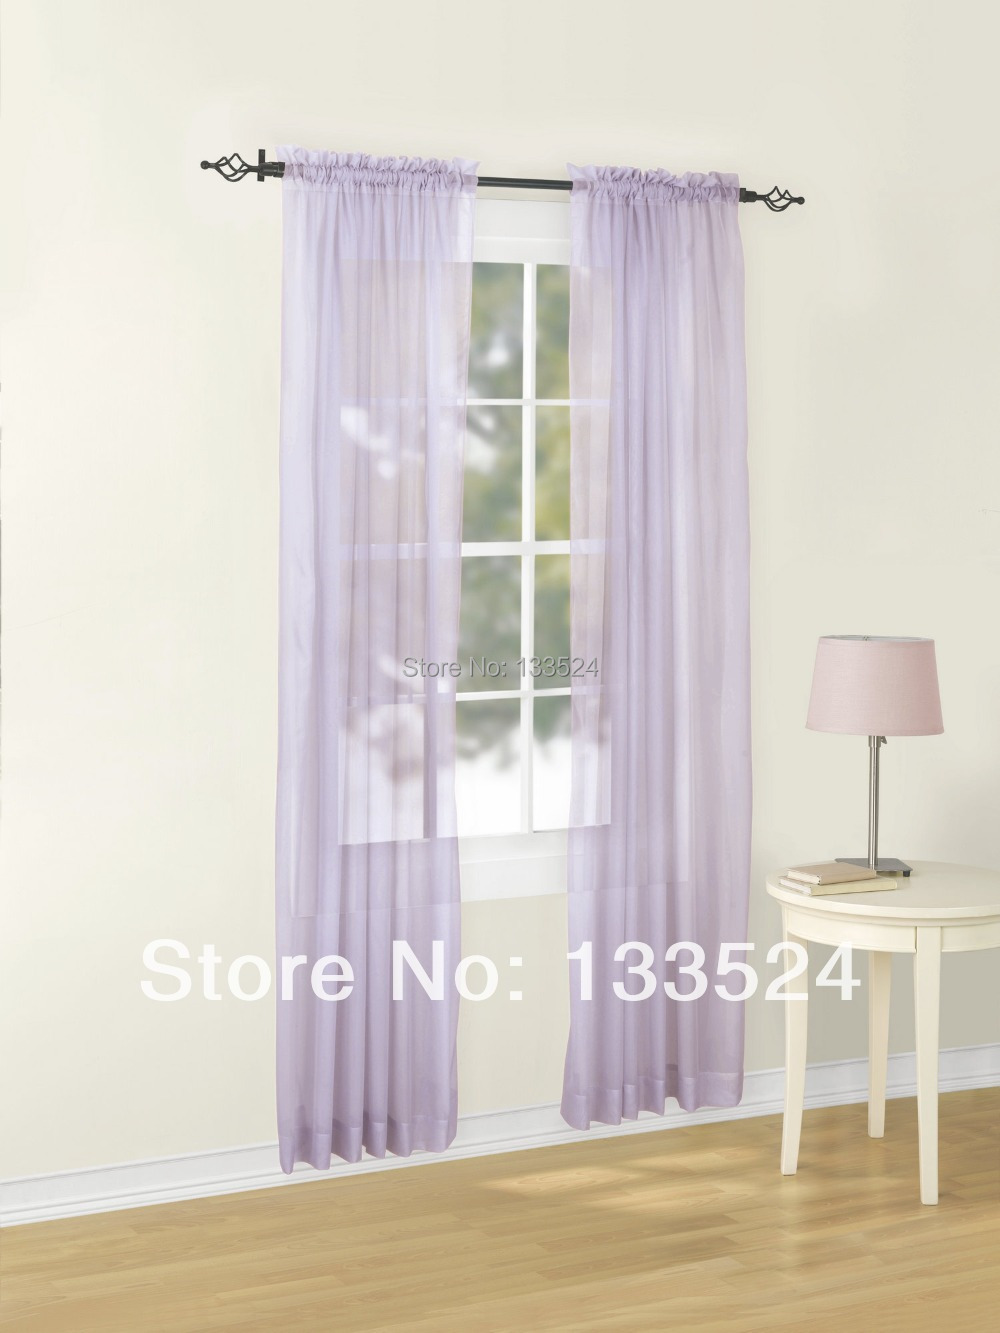 Popular european style curtains and sheers buy cheap european ...